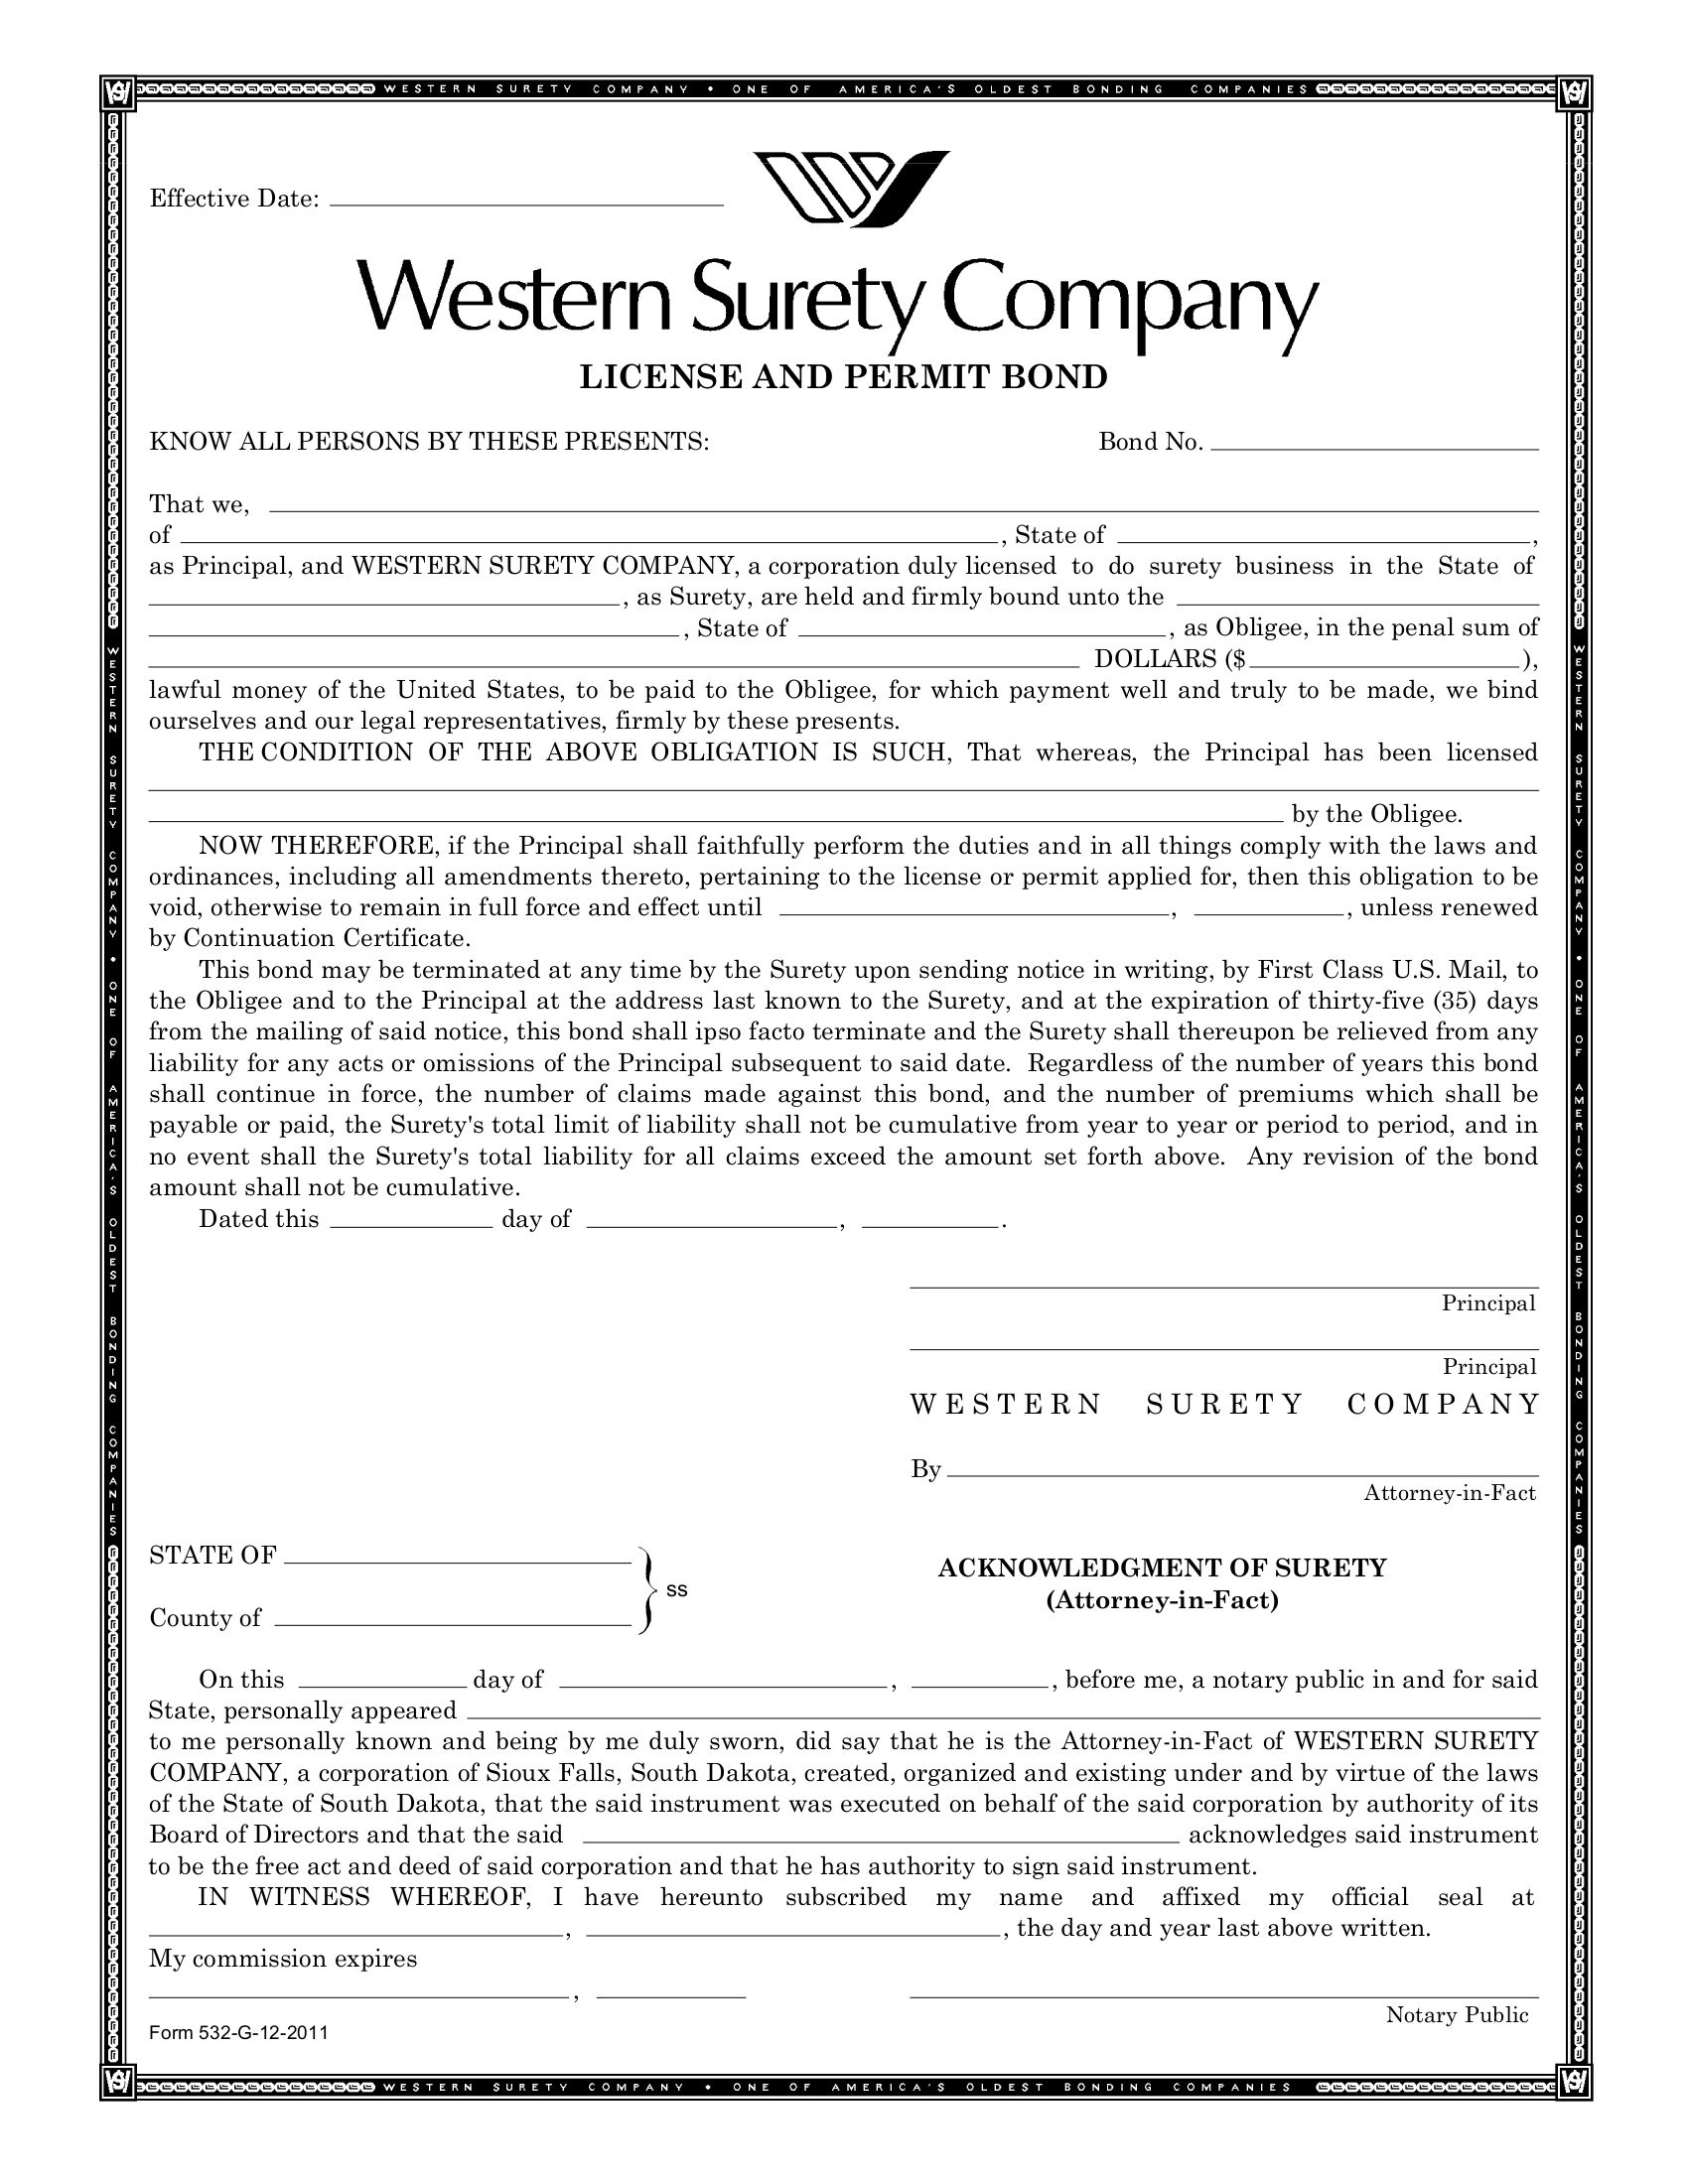 Boise Private Patrol and Security Alarm Bond sample image